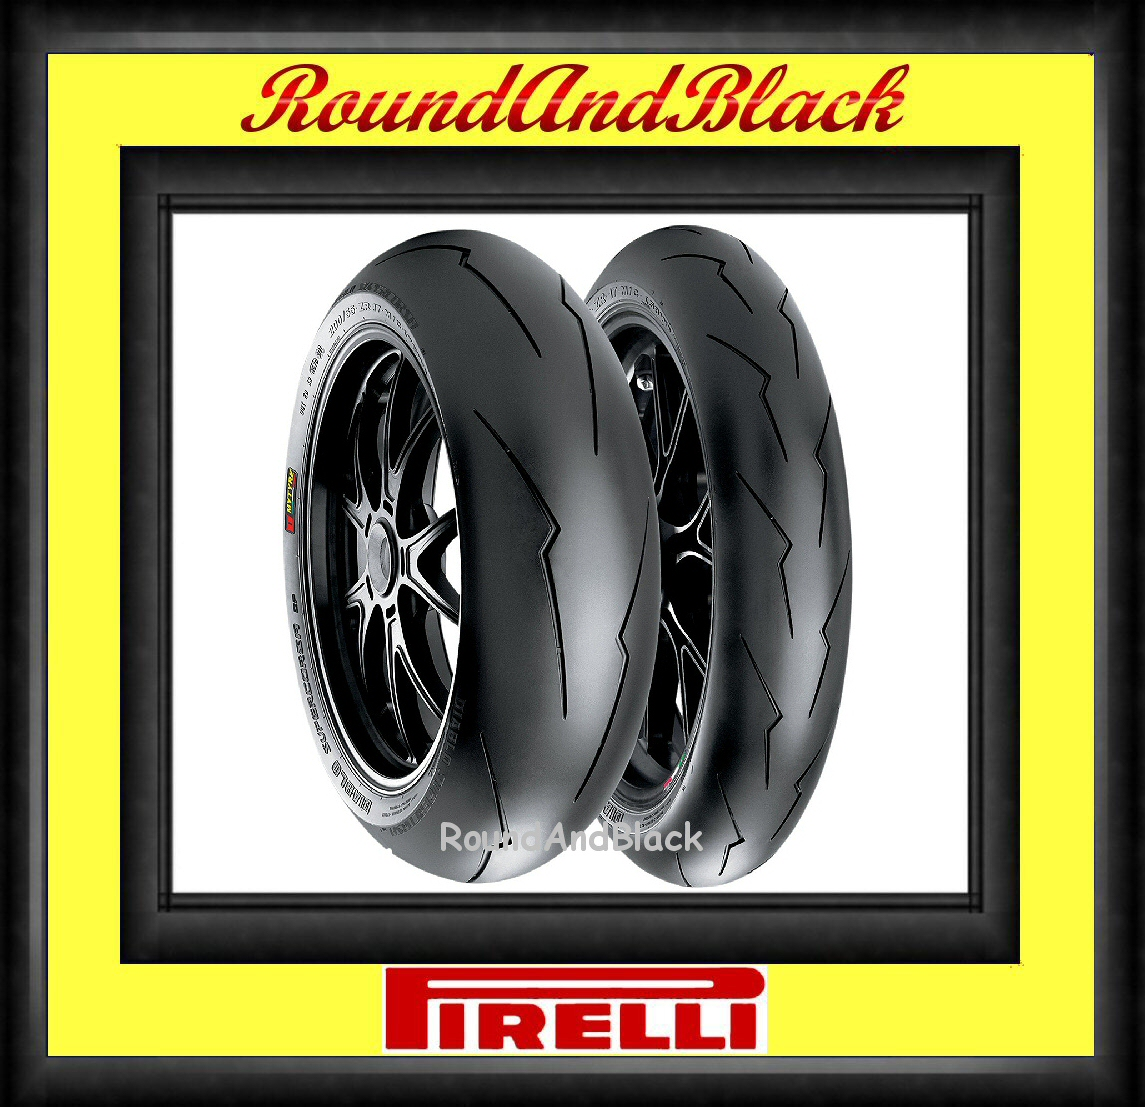 120 70 17 190 50 17 pirelli diablo supercorsa v2 sp motorcycle tyres bsb new ebay. Black Bedroom Furniture Sets. Home Design Ideas